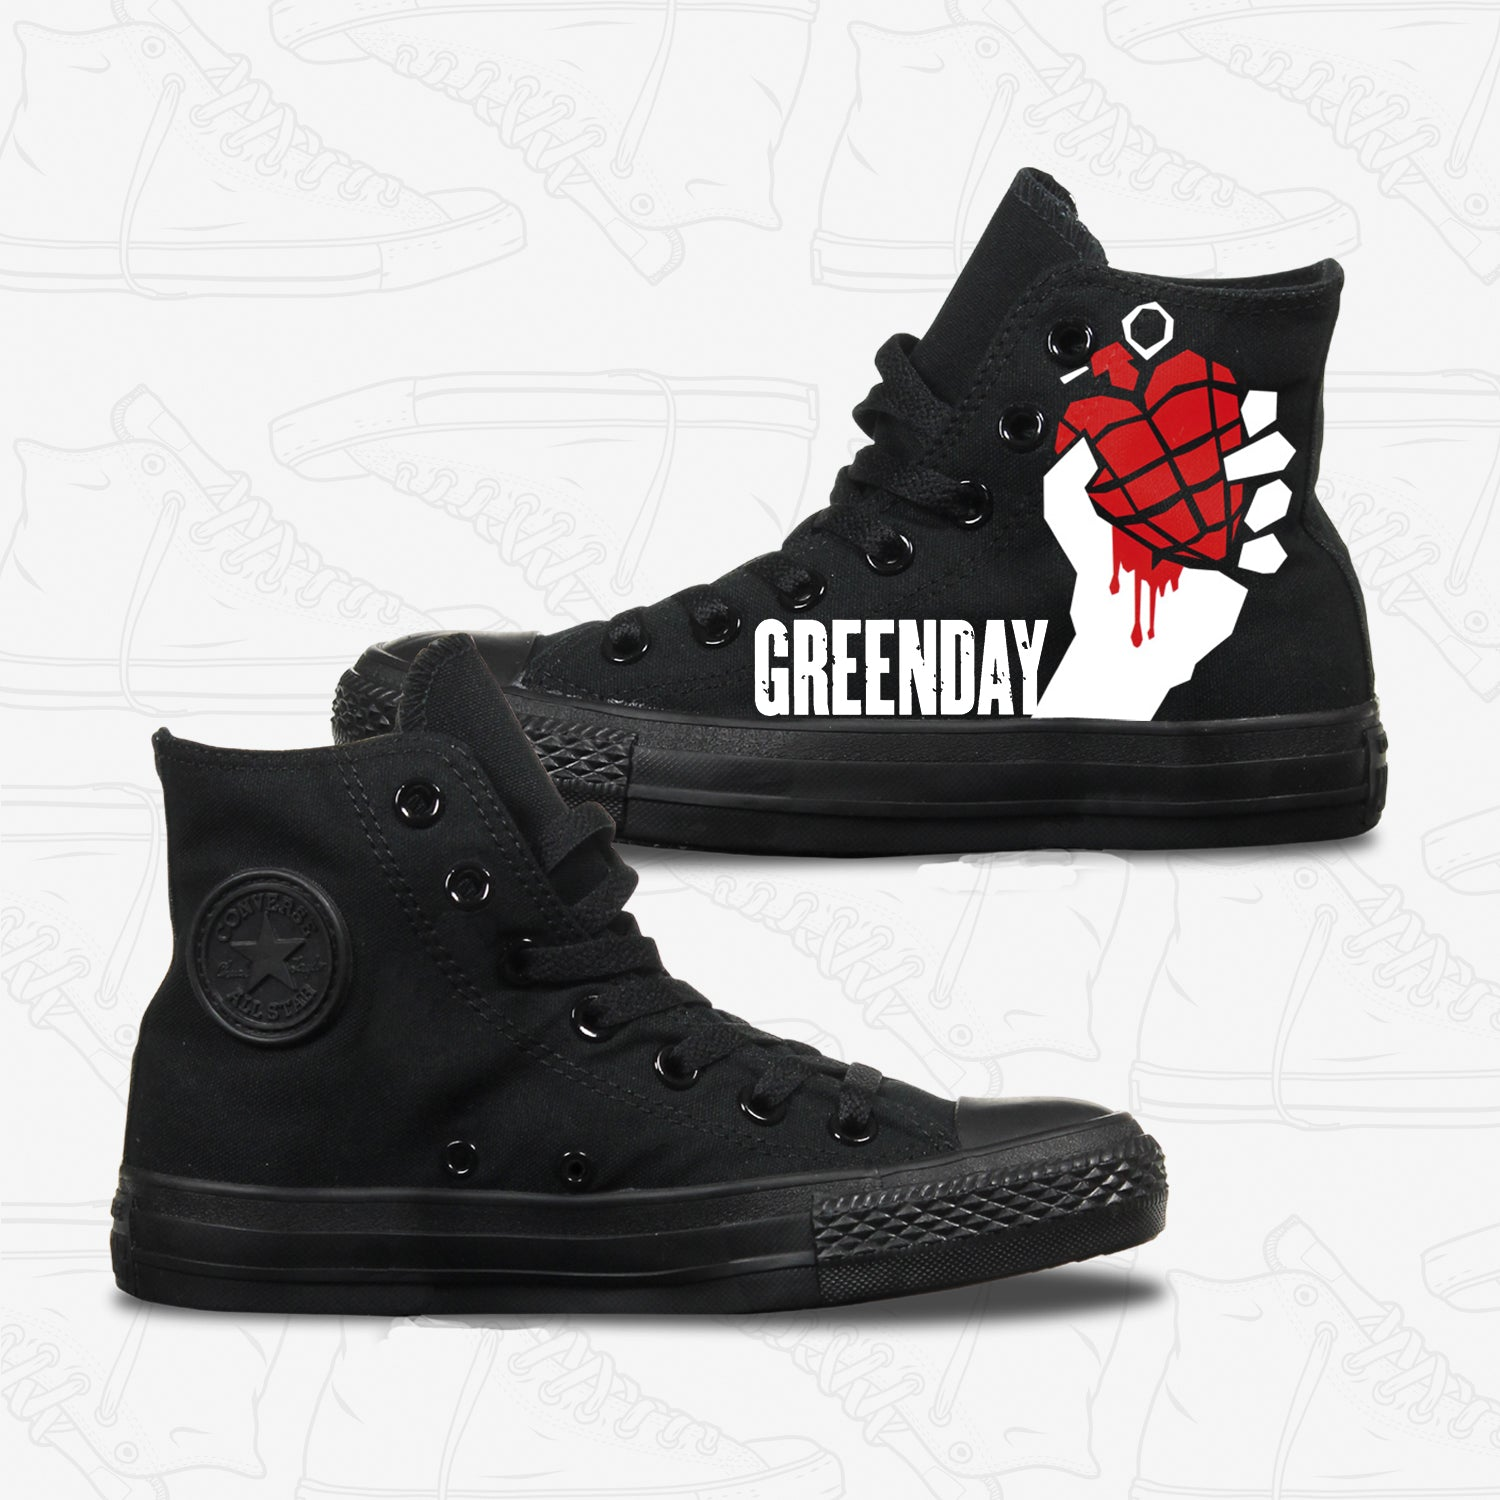 2converse green day